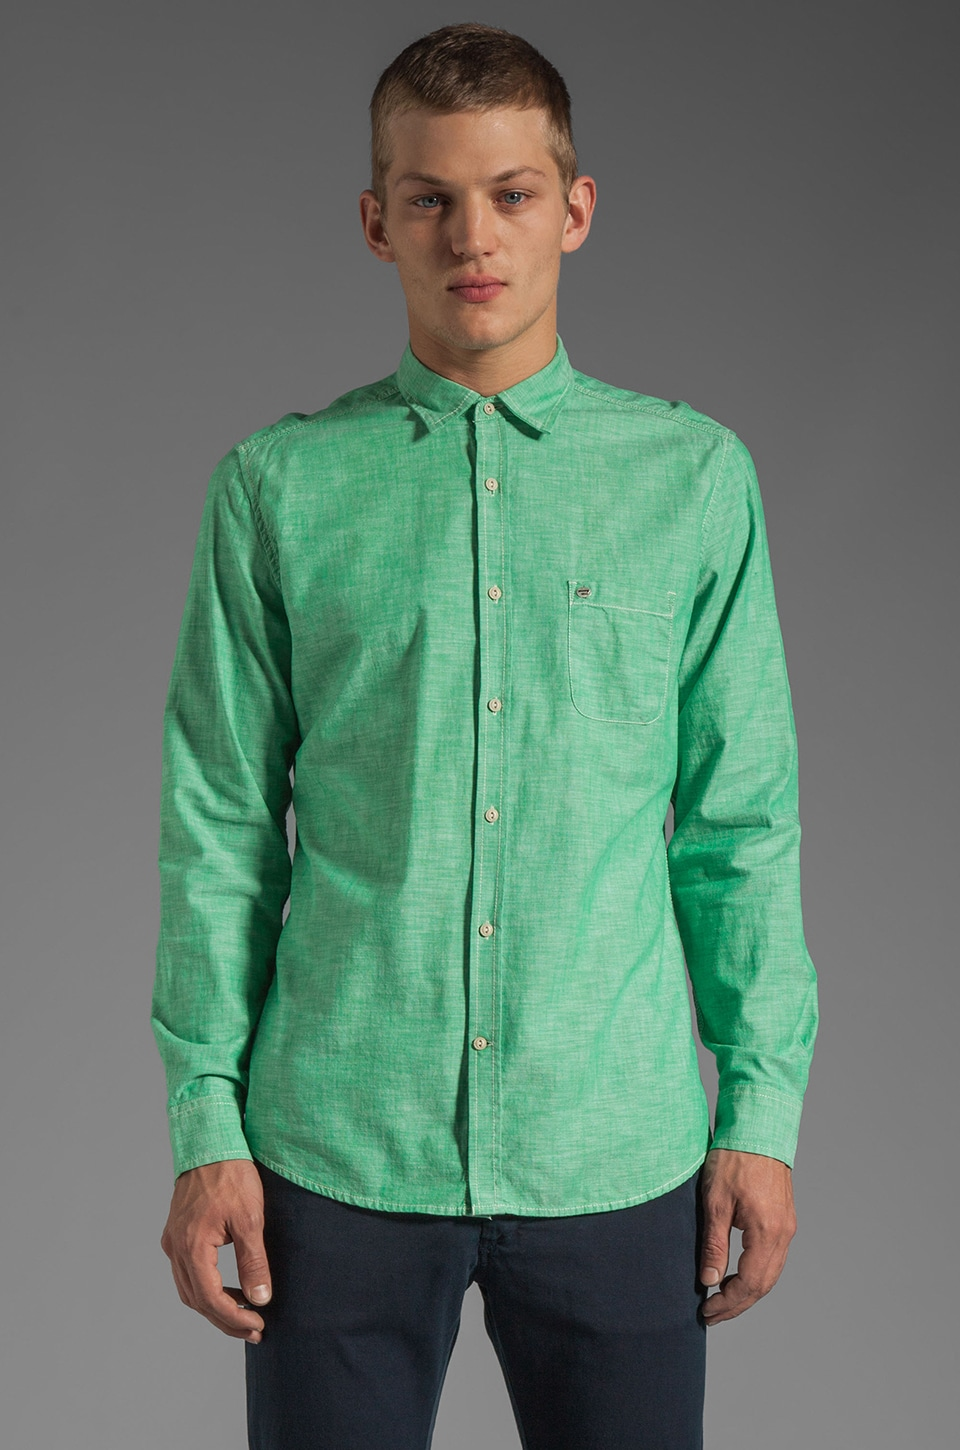 Diesel Sharpy Button Down in Stone Green